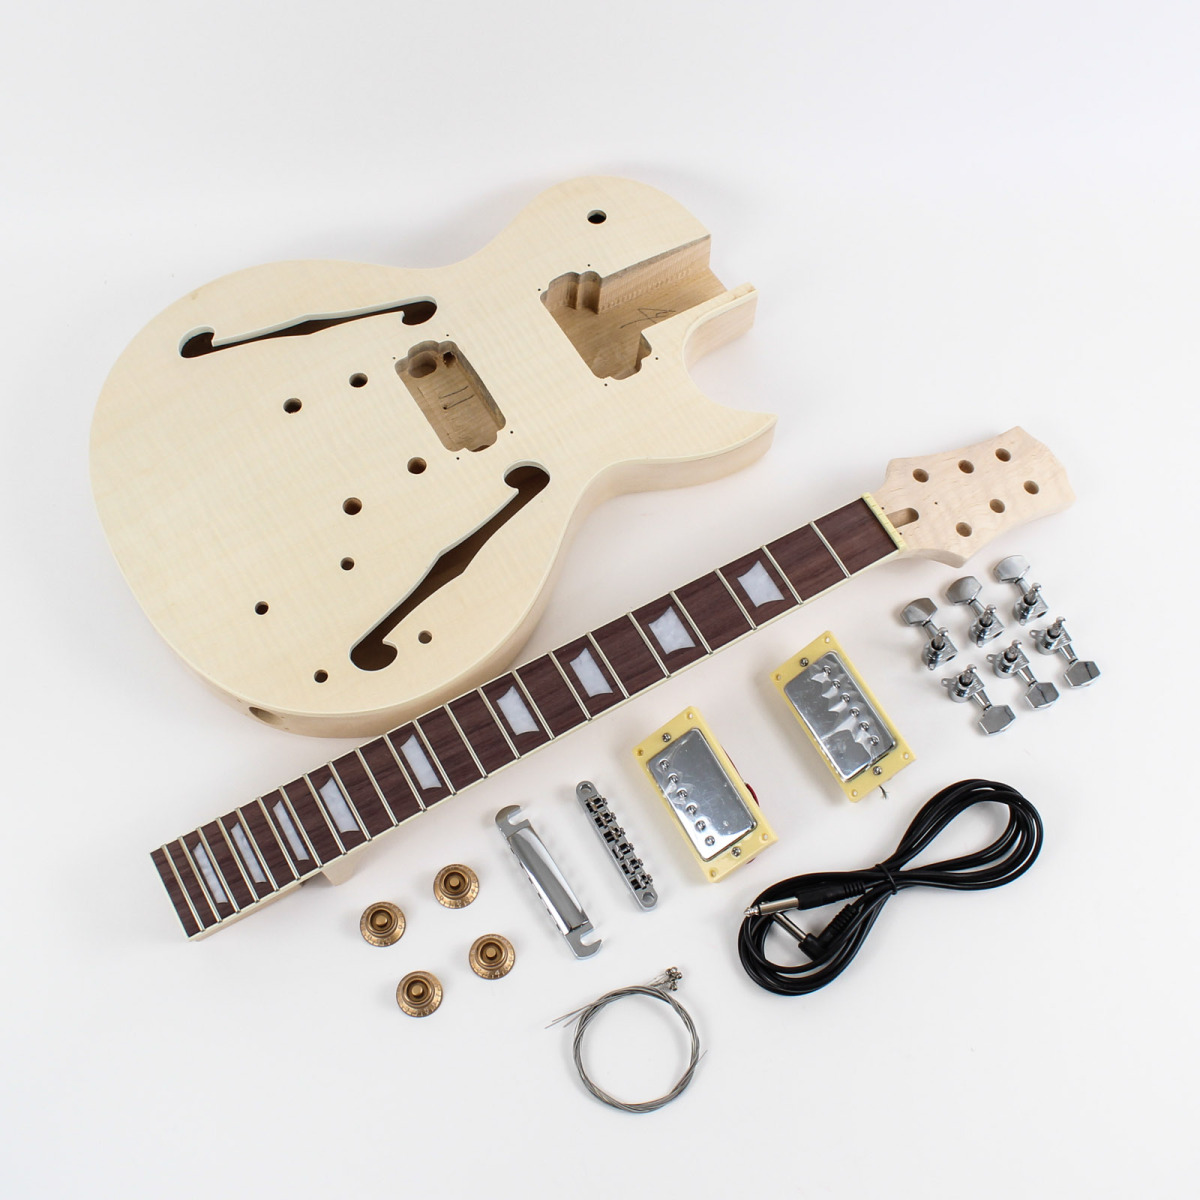 les paul semi hollow body diy guitar kit diy guitars. Black Bedroom Furniture Sets. Home Design Ideas